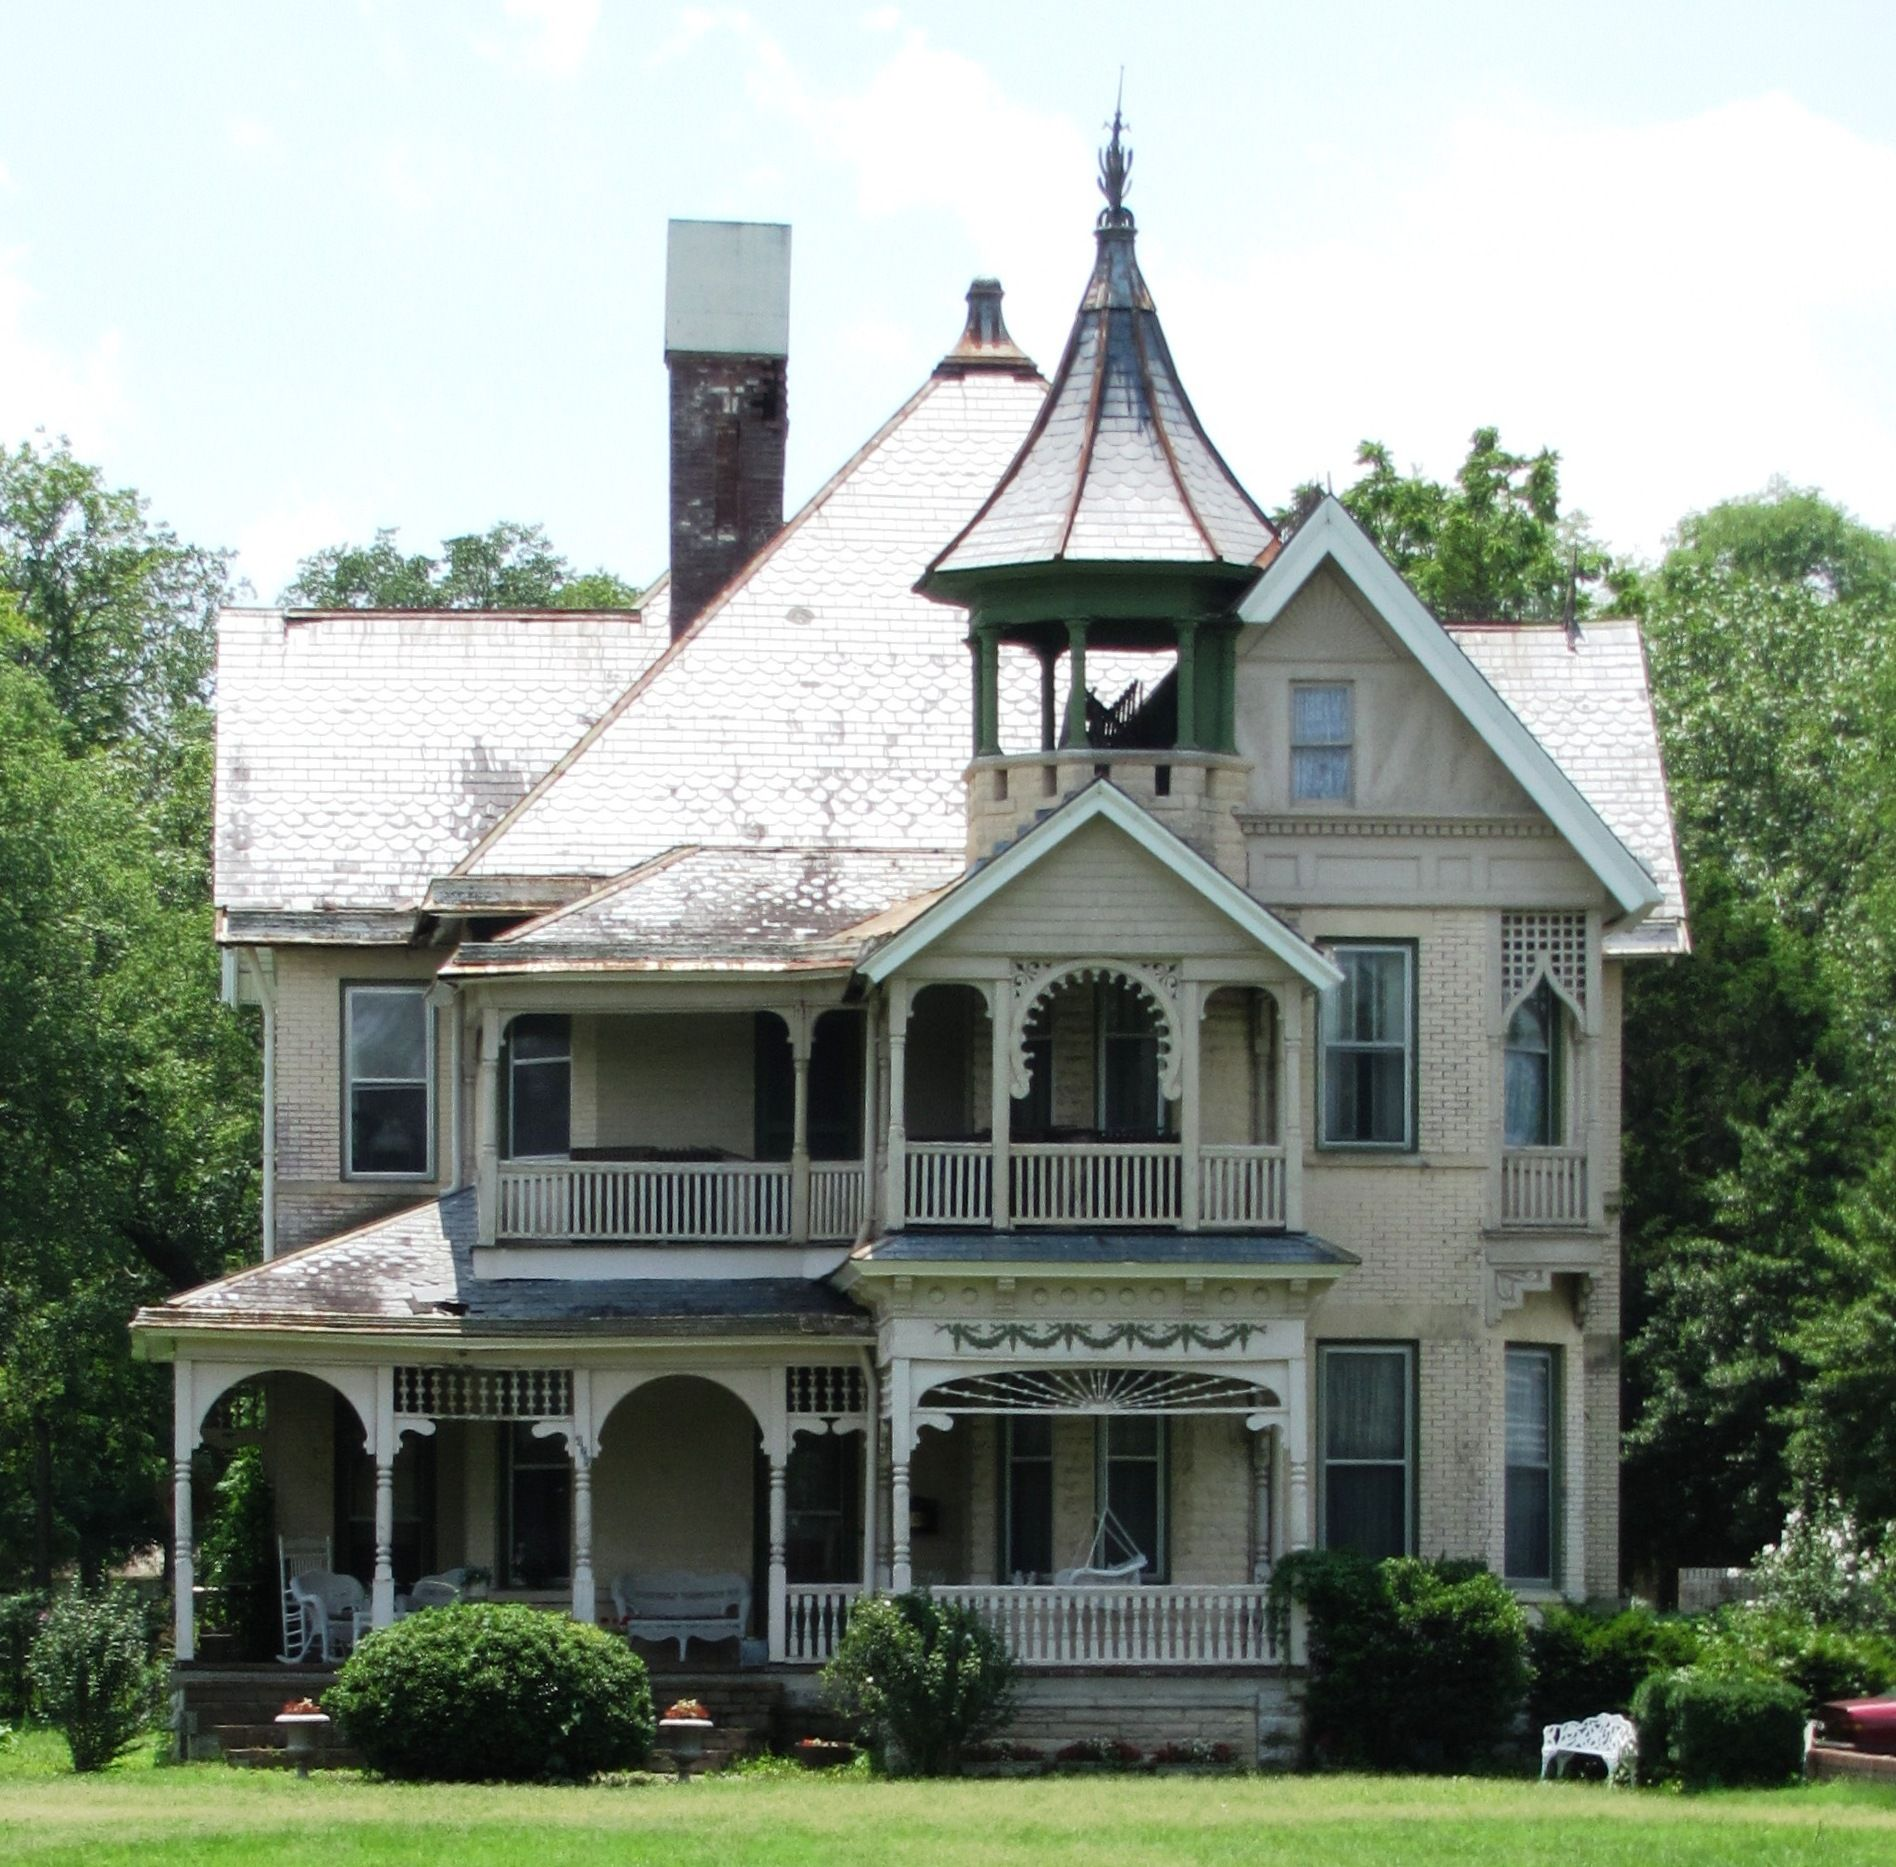 the queen anne style i w p buchanan house in lebanon tennessee built in the the house was designed by prominent knoxville architect george f barber and is now listed on the national register of historic